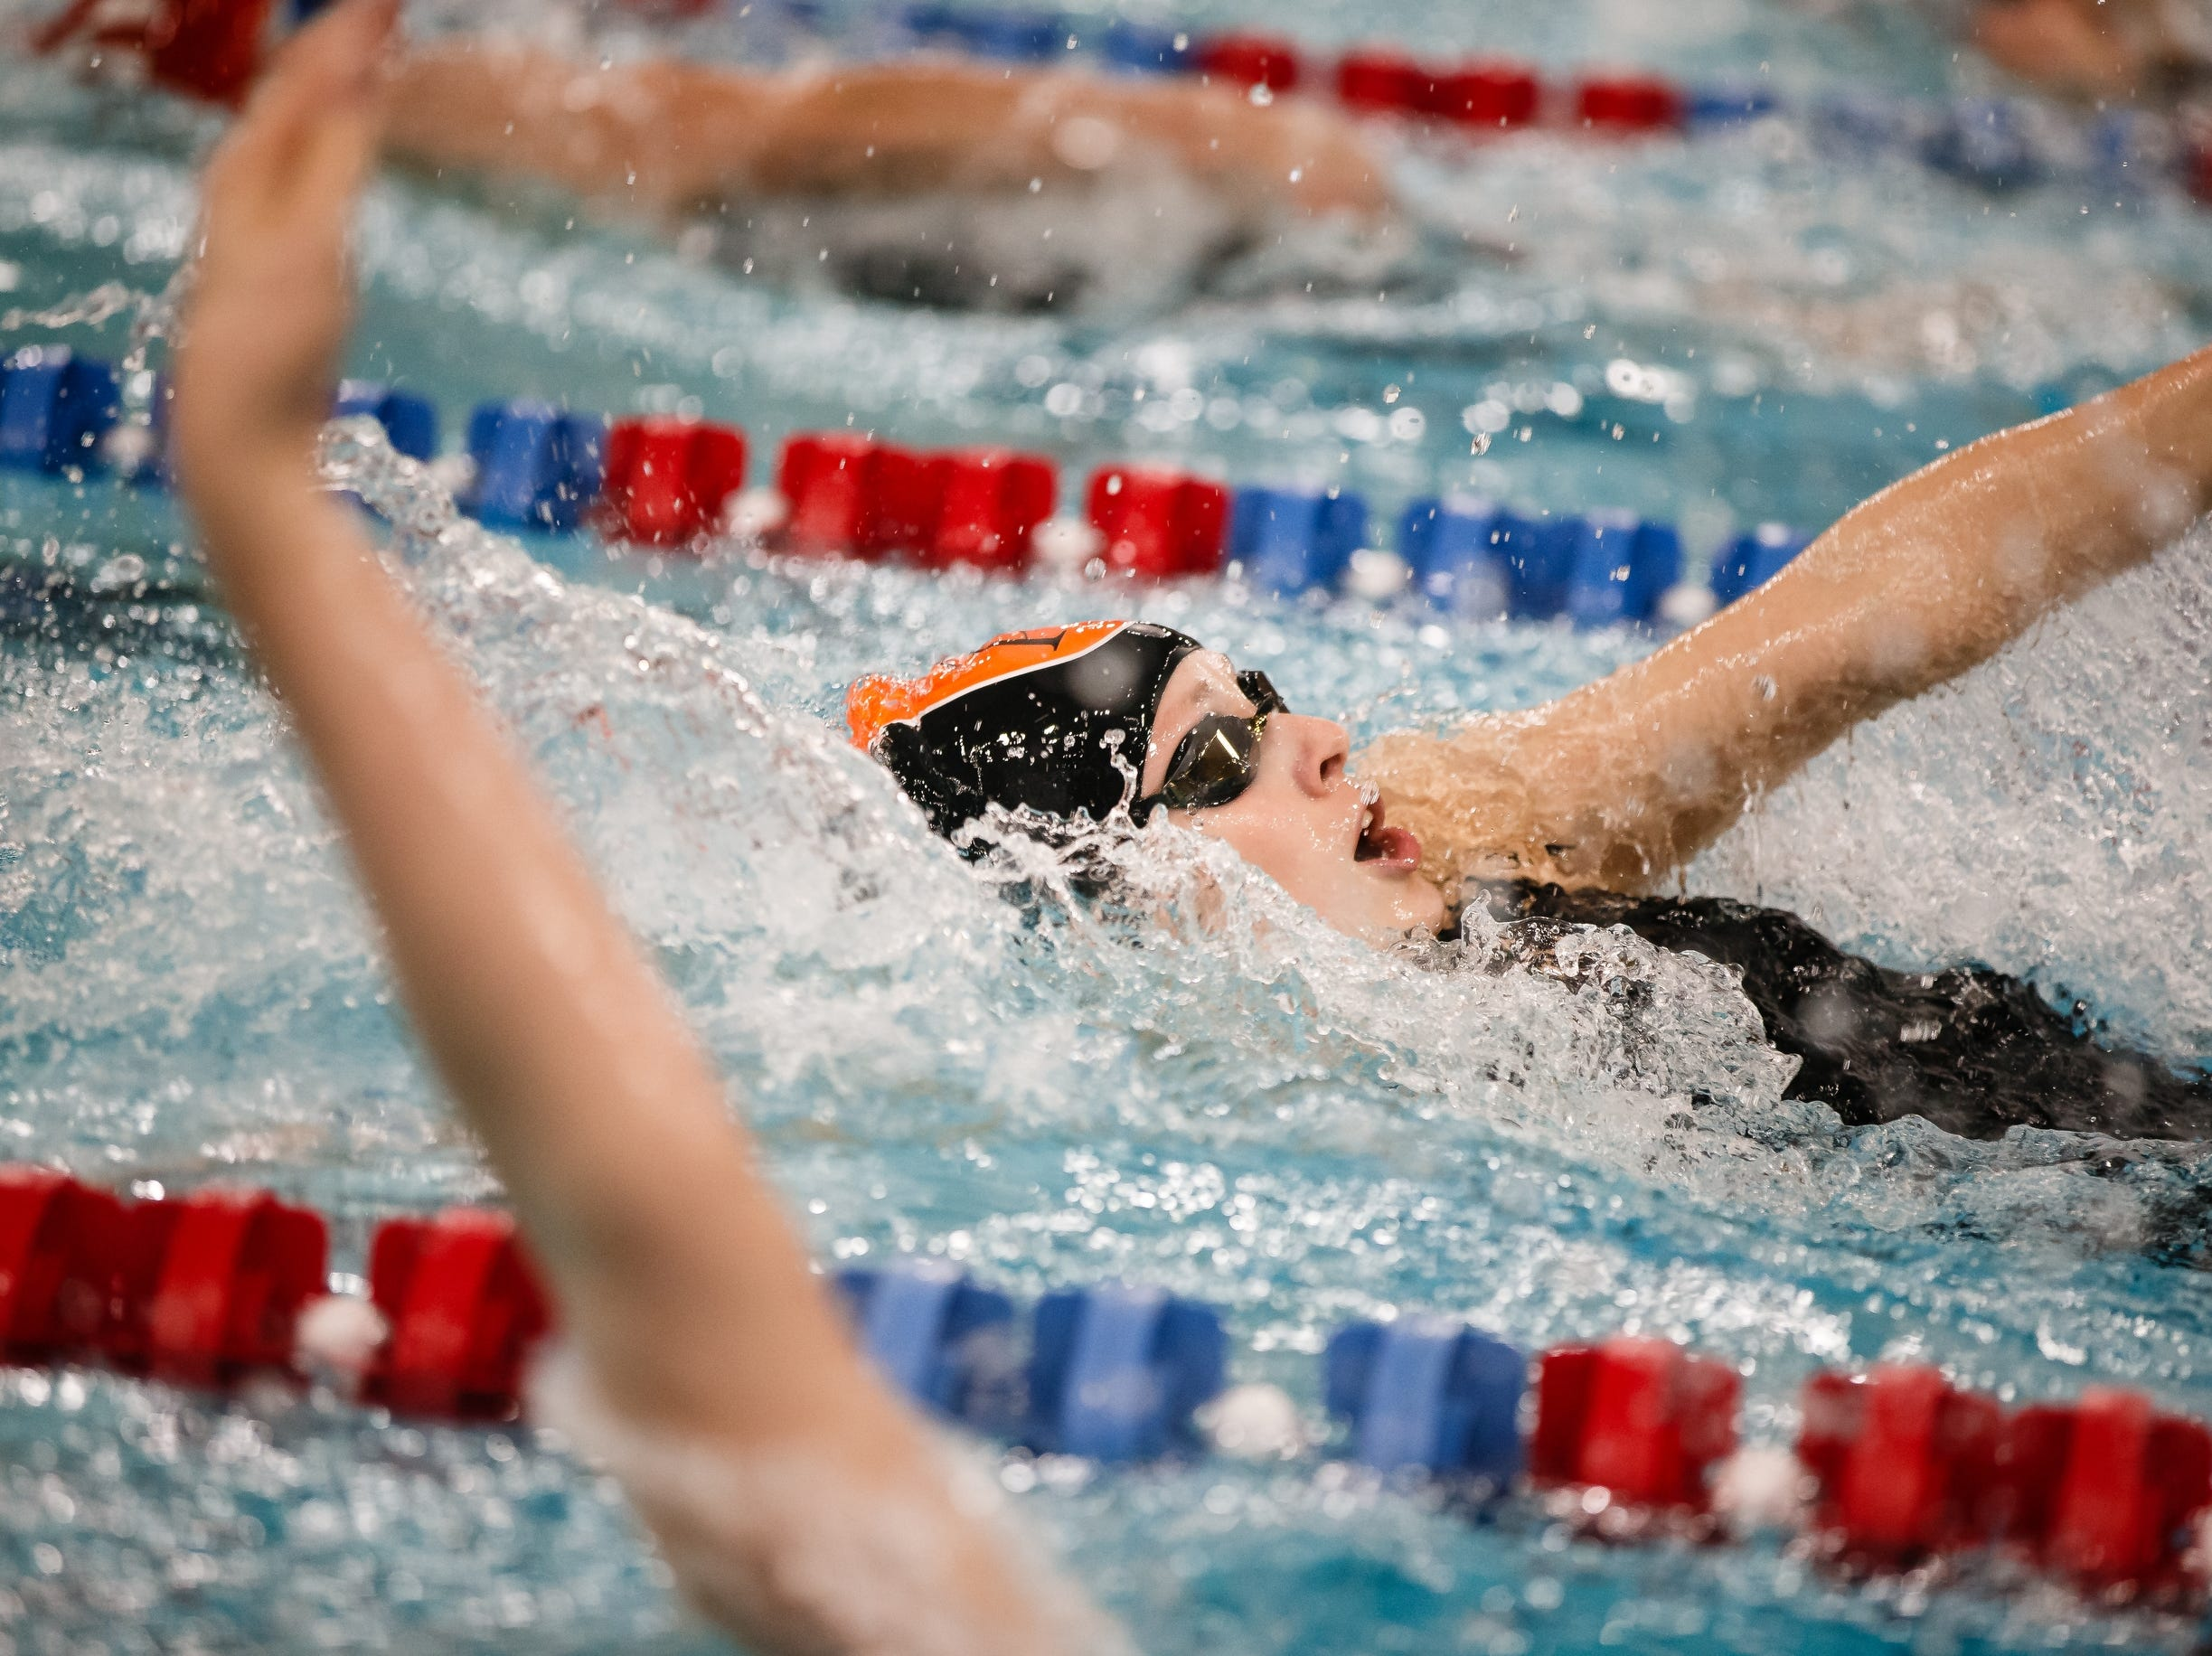 Ames' Molly Winer competes in the 200 yard IM at the Iowa girls state swimming meet on Saturday, Nov. 3, 2018, in Marshalltown.